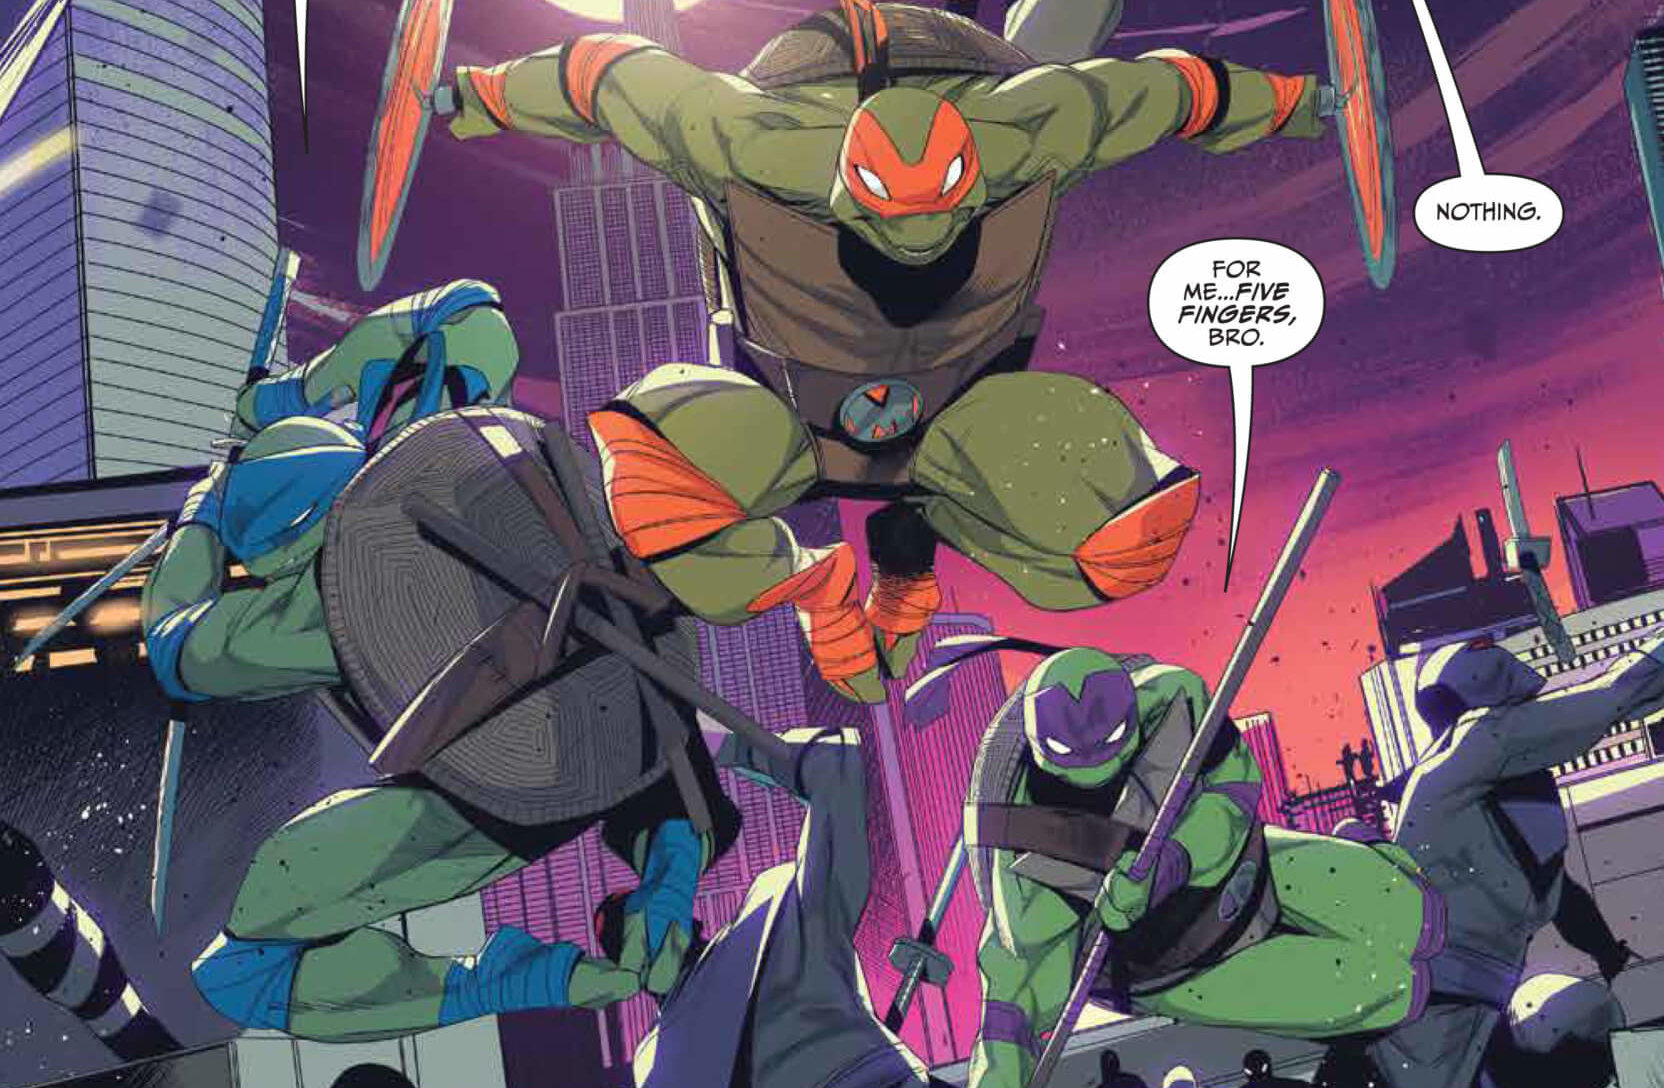 Ninja Turtles Leaping Into Action